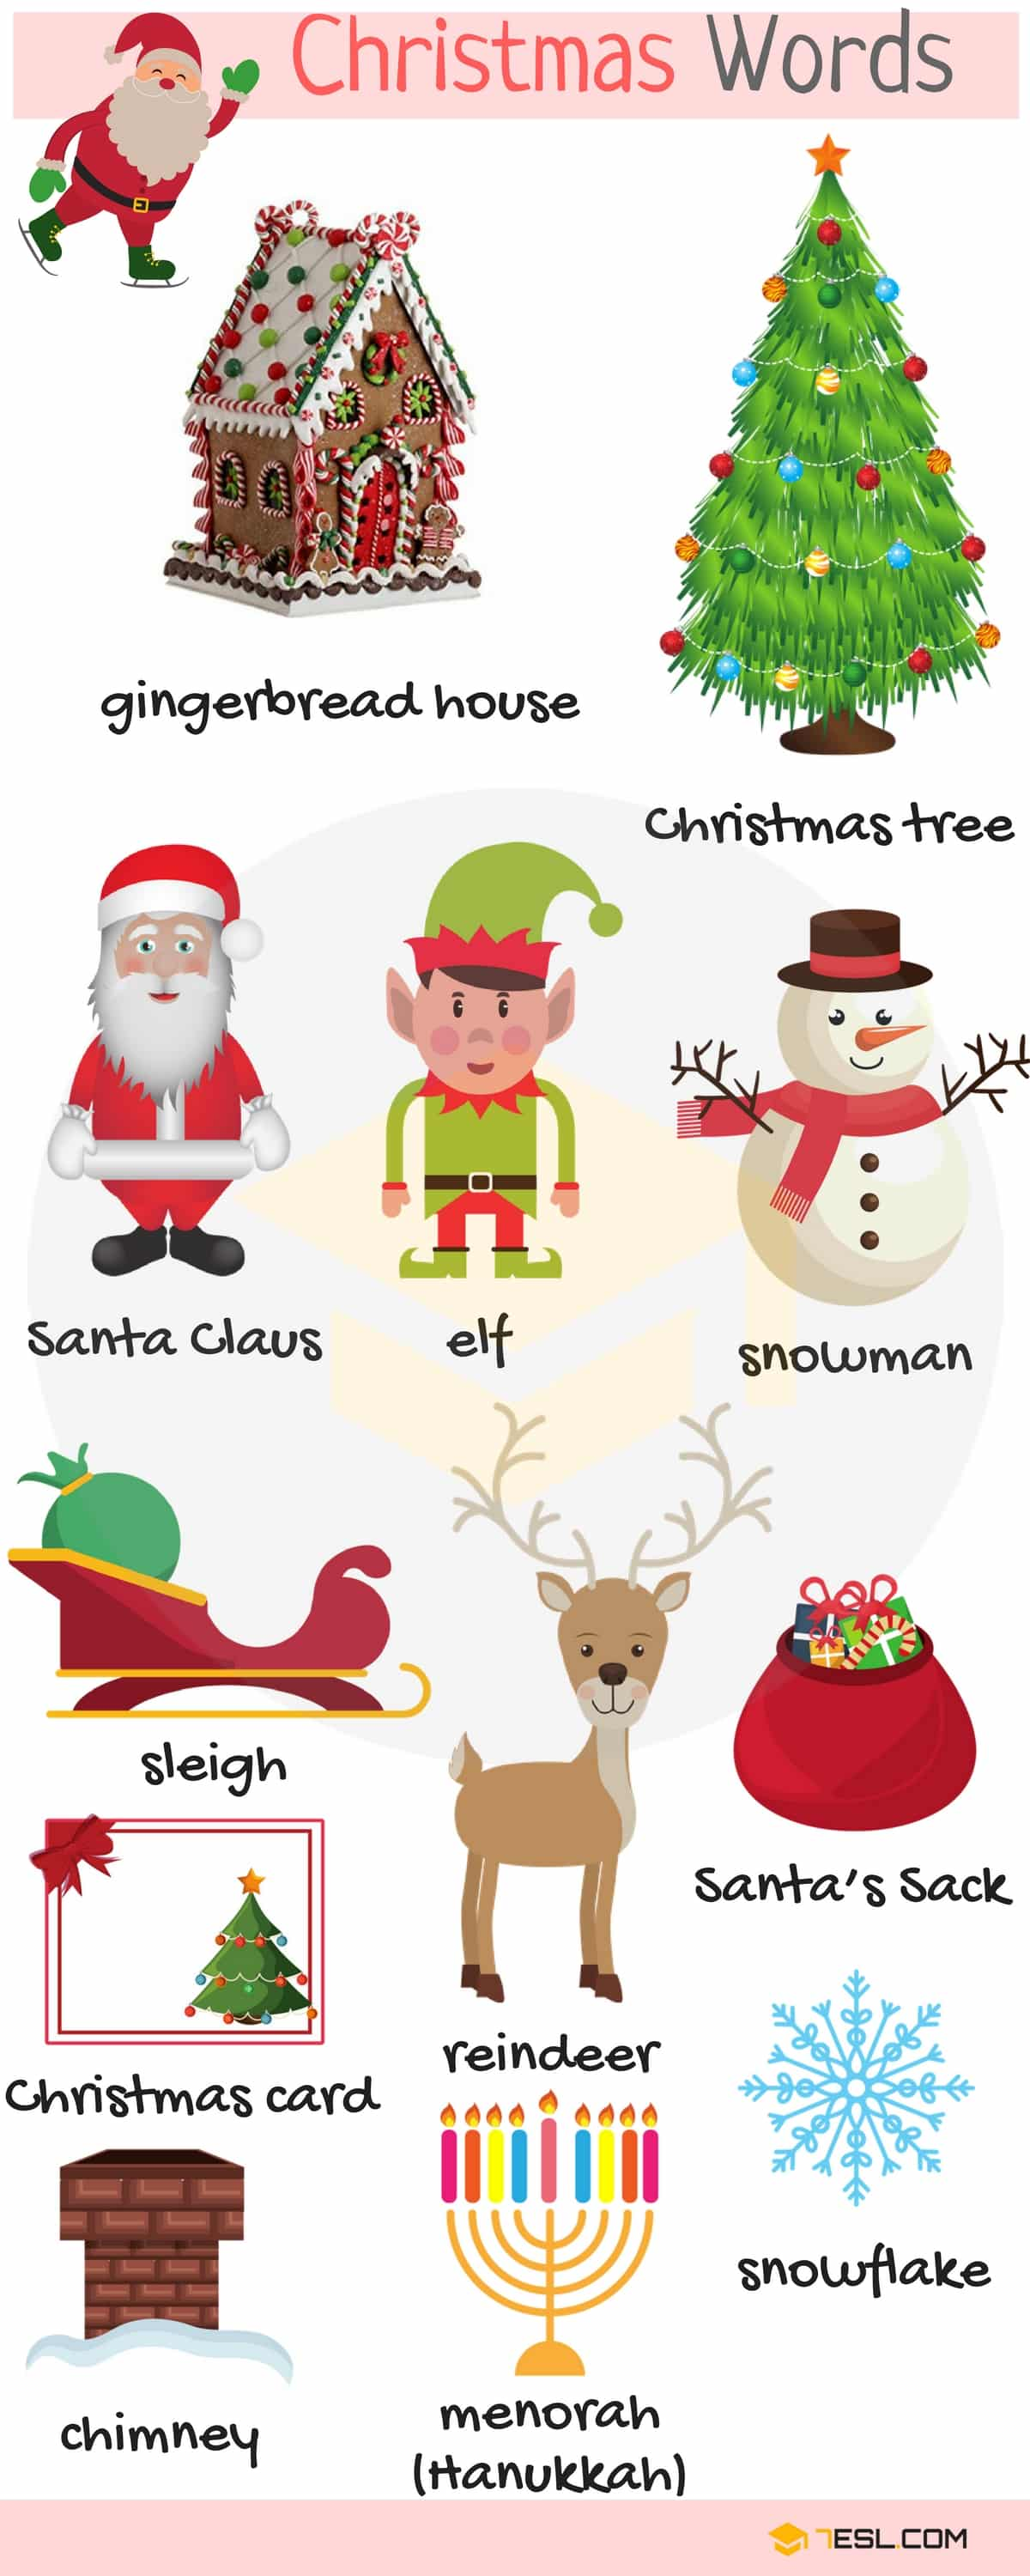 Christmas Words Useful Christmas Vocabulary Words List